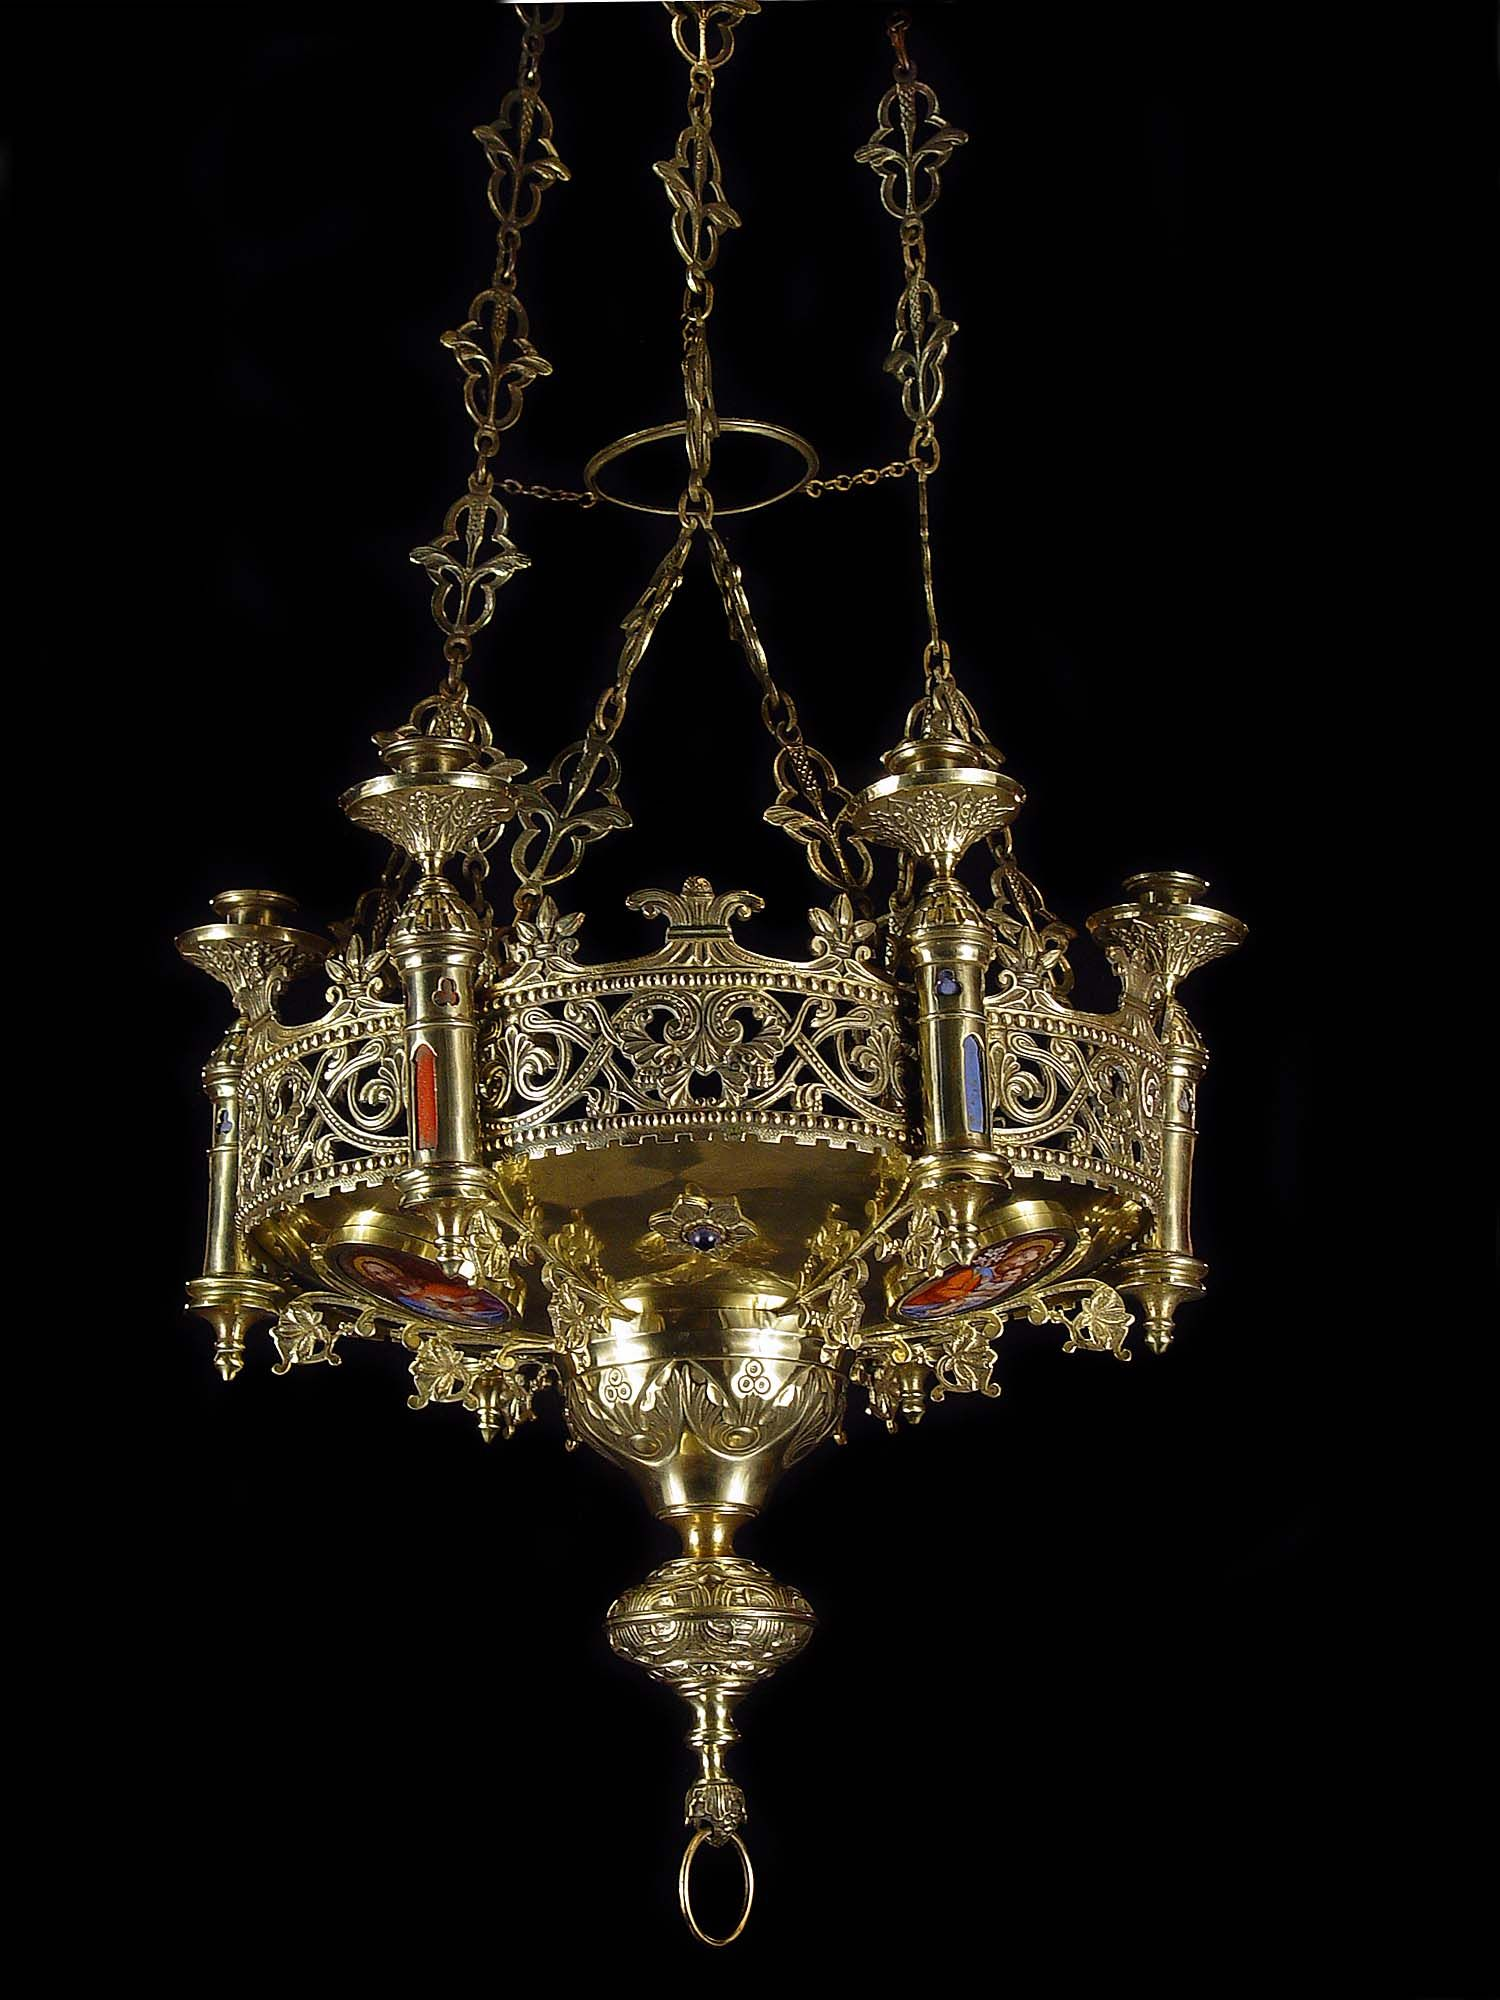 Antique brass gothic revival chandelier. Very regal looking! This would be  great hanging in the entryway of a Medieval mini-castle with an antique  armoire ... - Antique Brass Gothic Revival Chandelier. Very Regal Looking! This